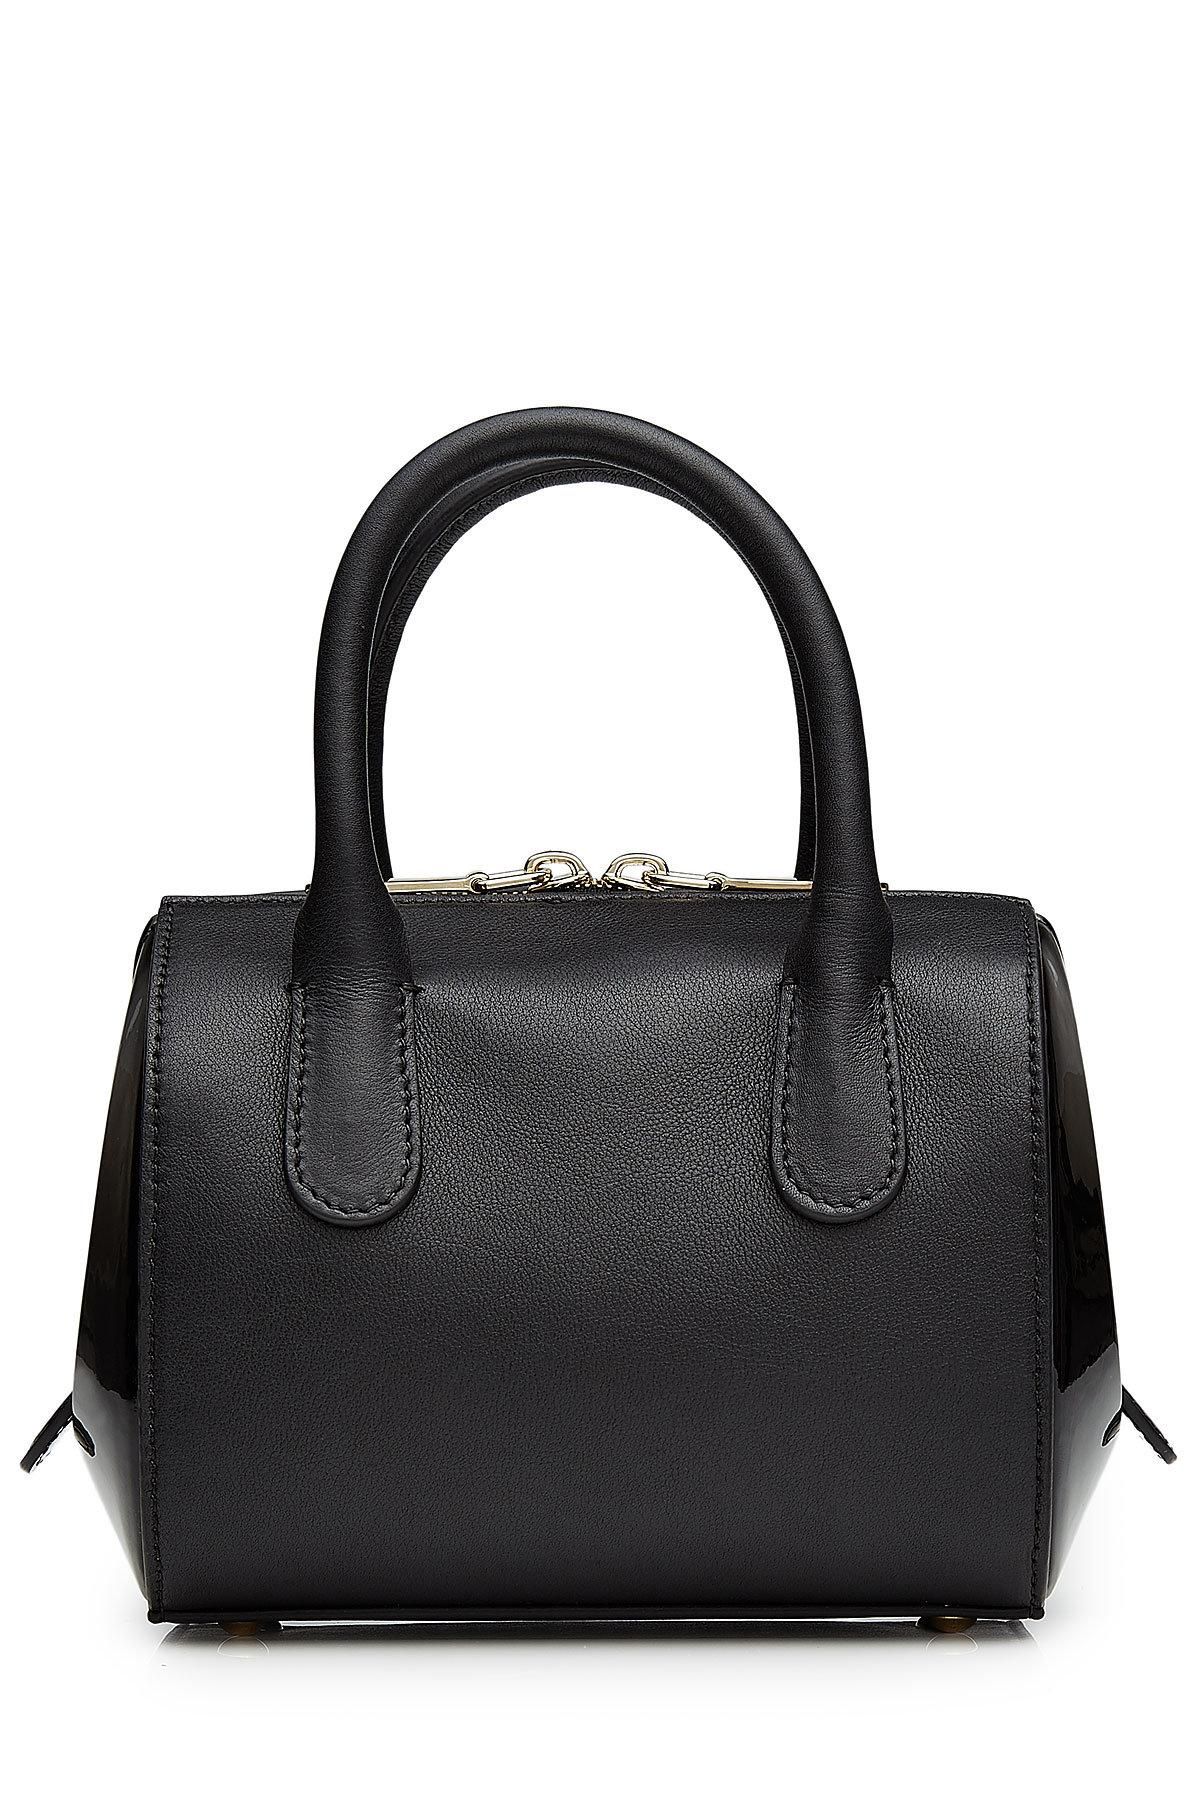 bf5bc3f863 Lyst - Nina Ricci Small Leather Tote in Black